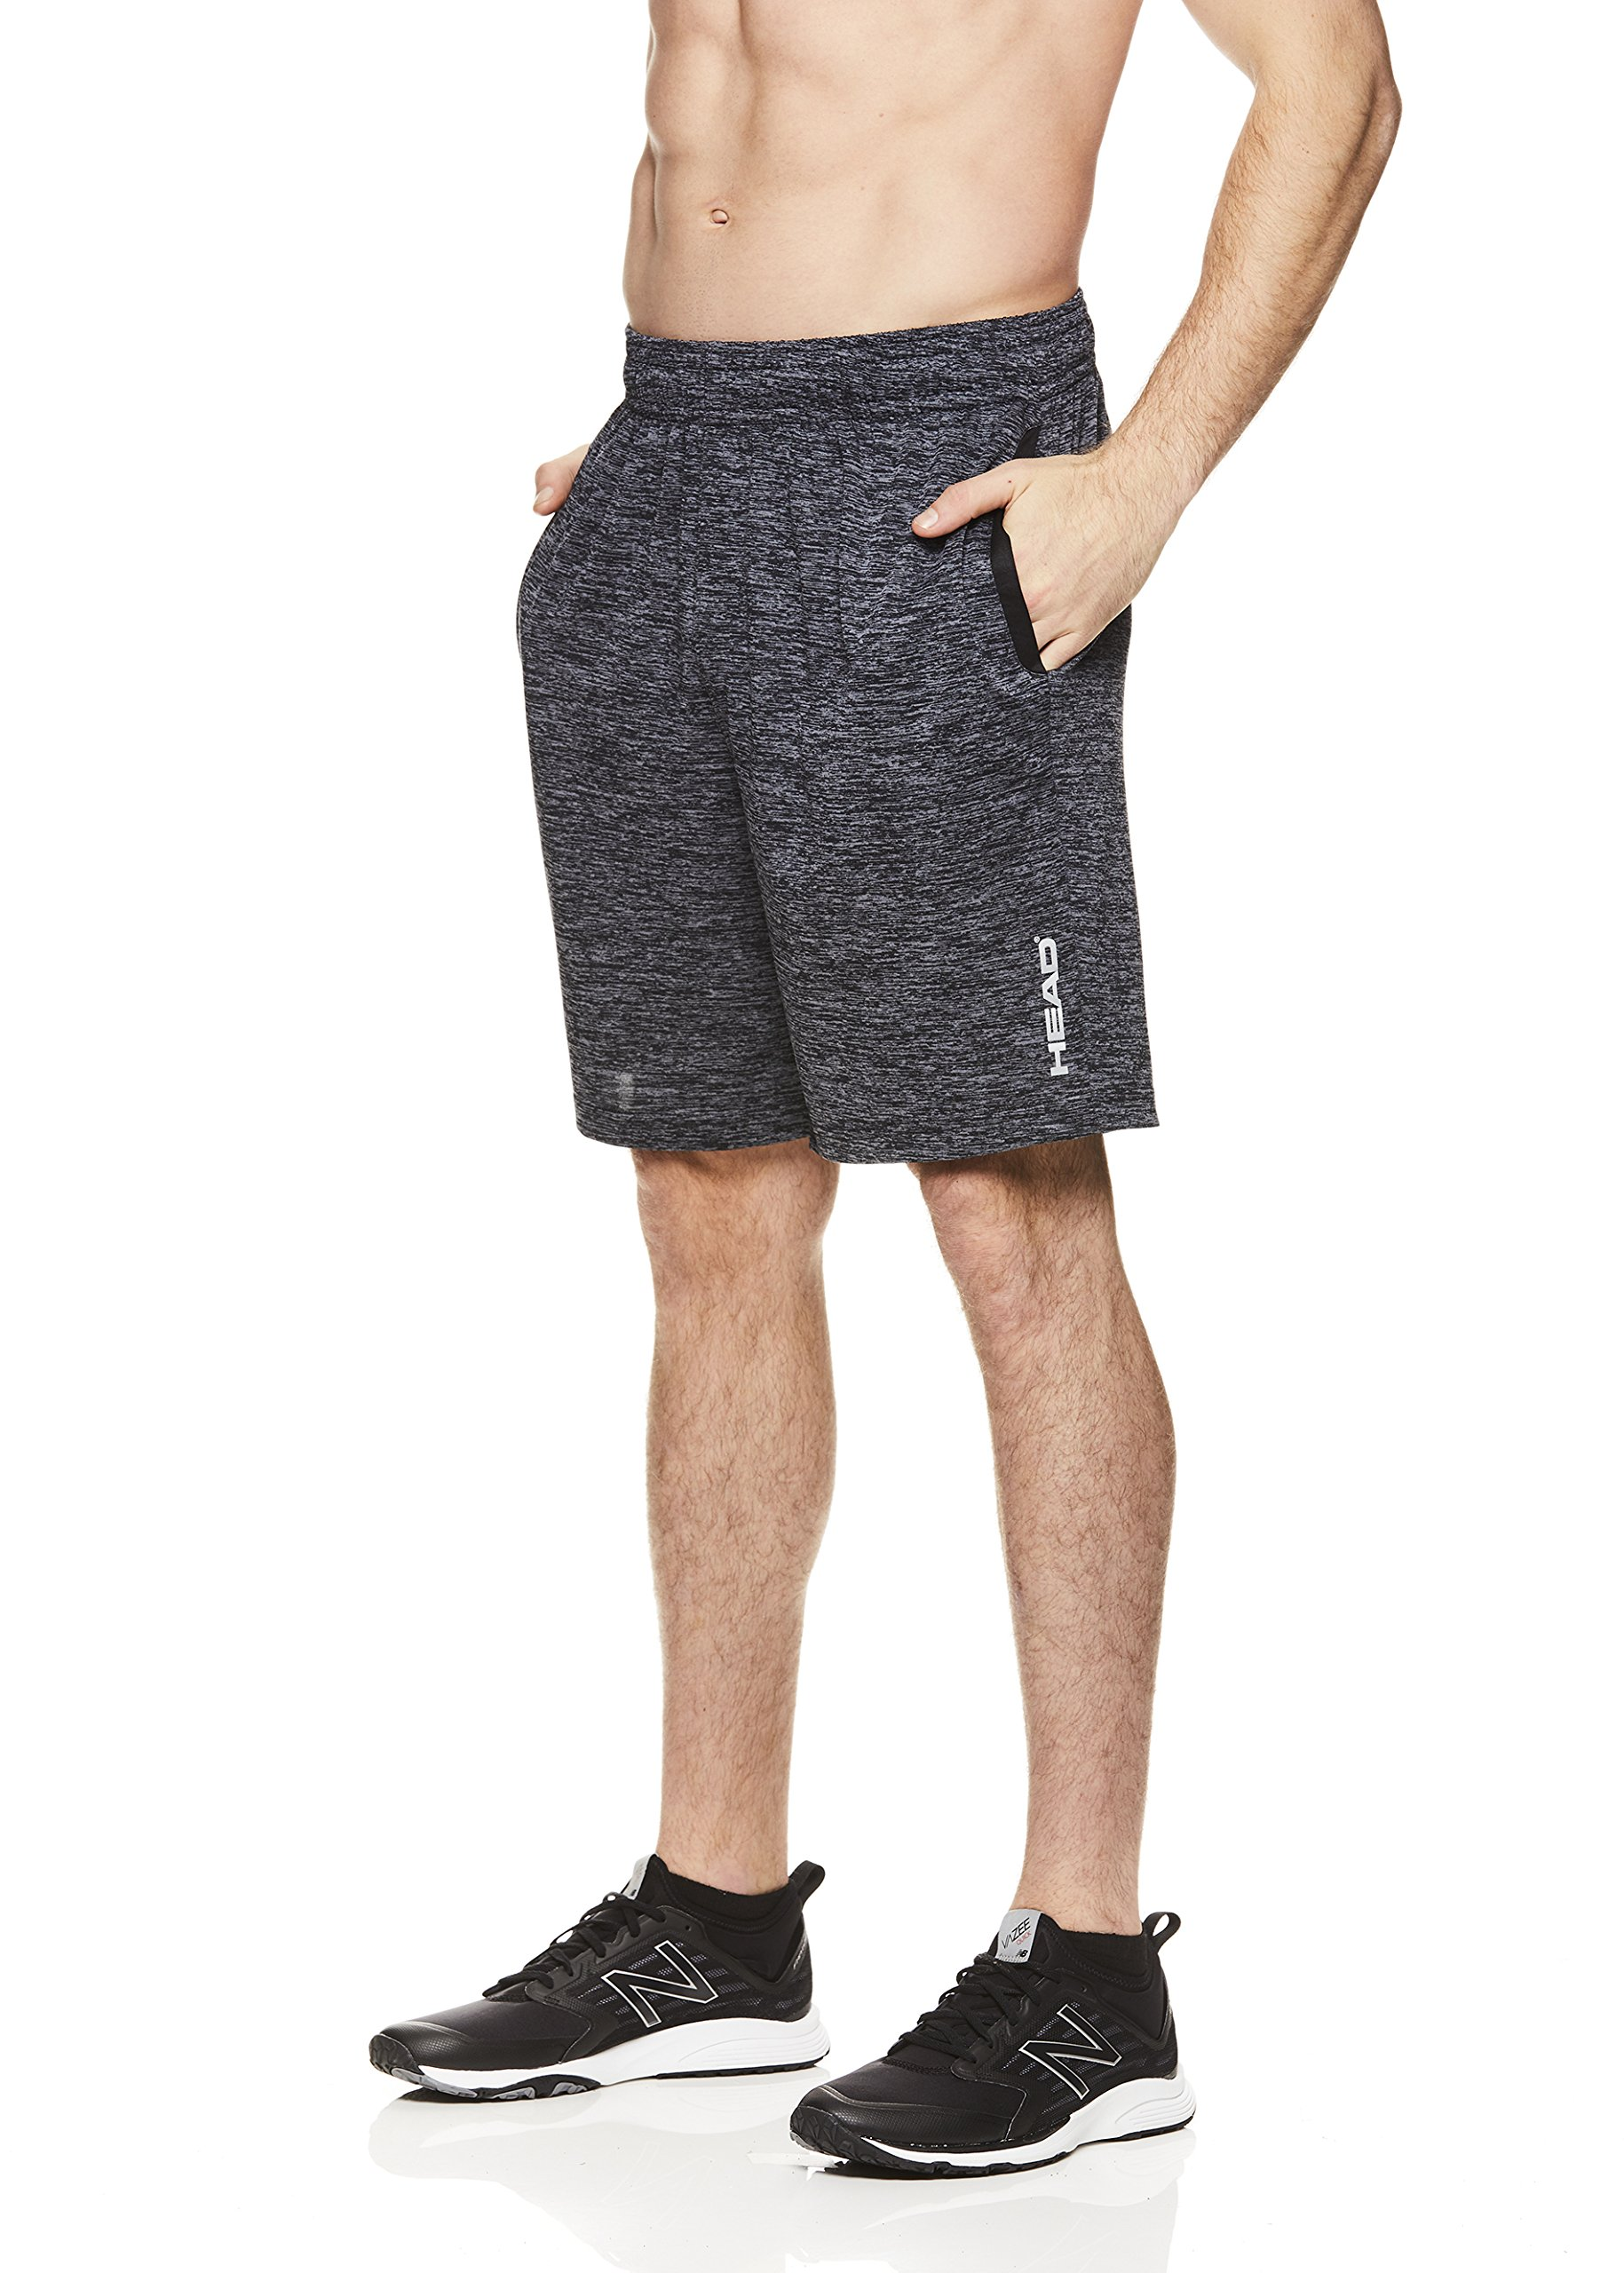 HEAD Men's Polyester Workout Gym & Running Shorts w/Elastic Waistband & Drawstring - Advantage Ebony Heather Black, 2X